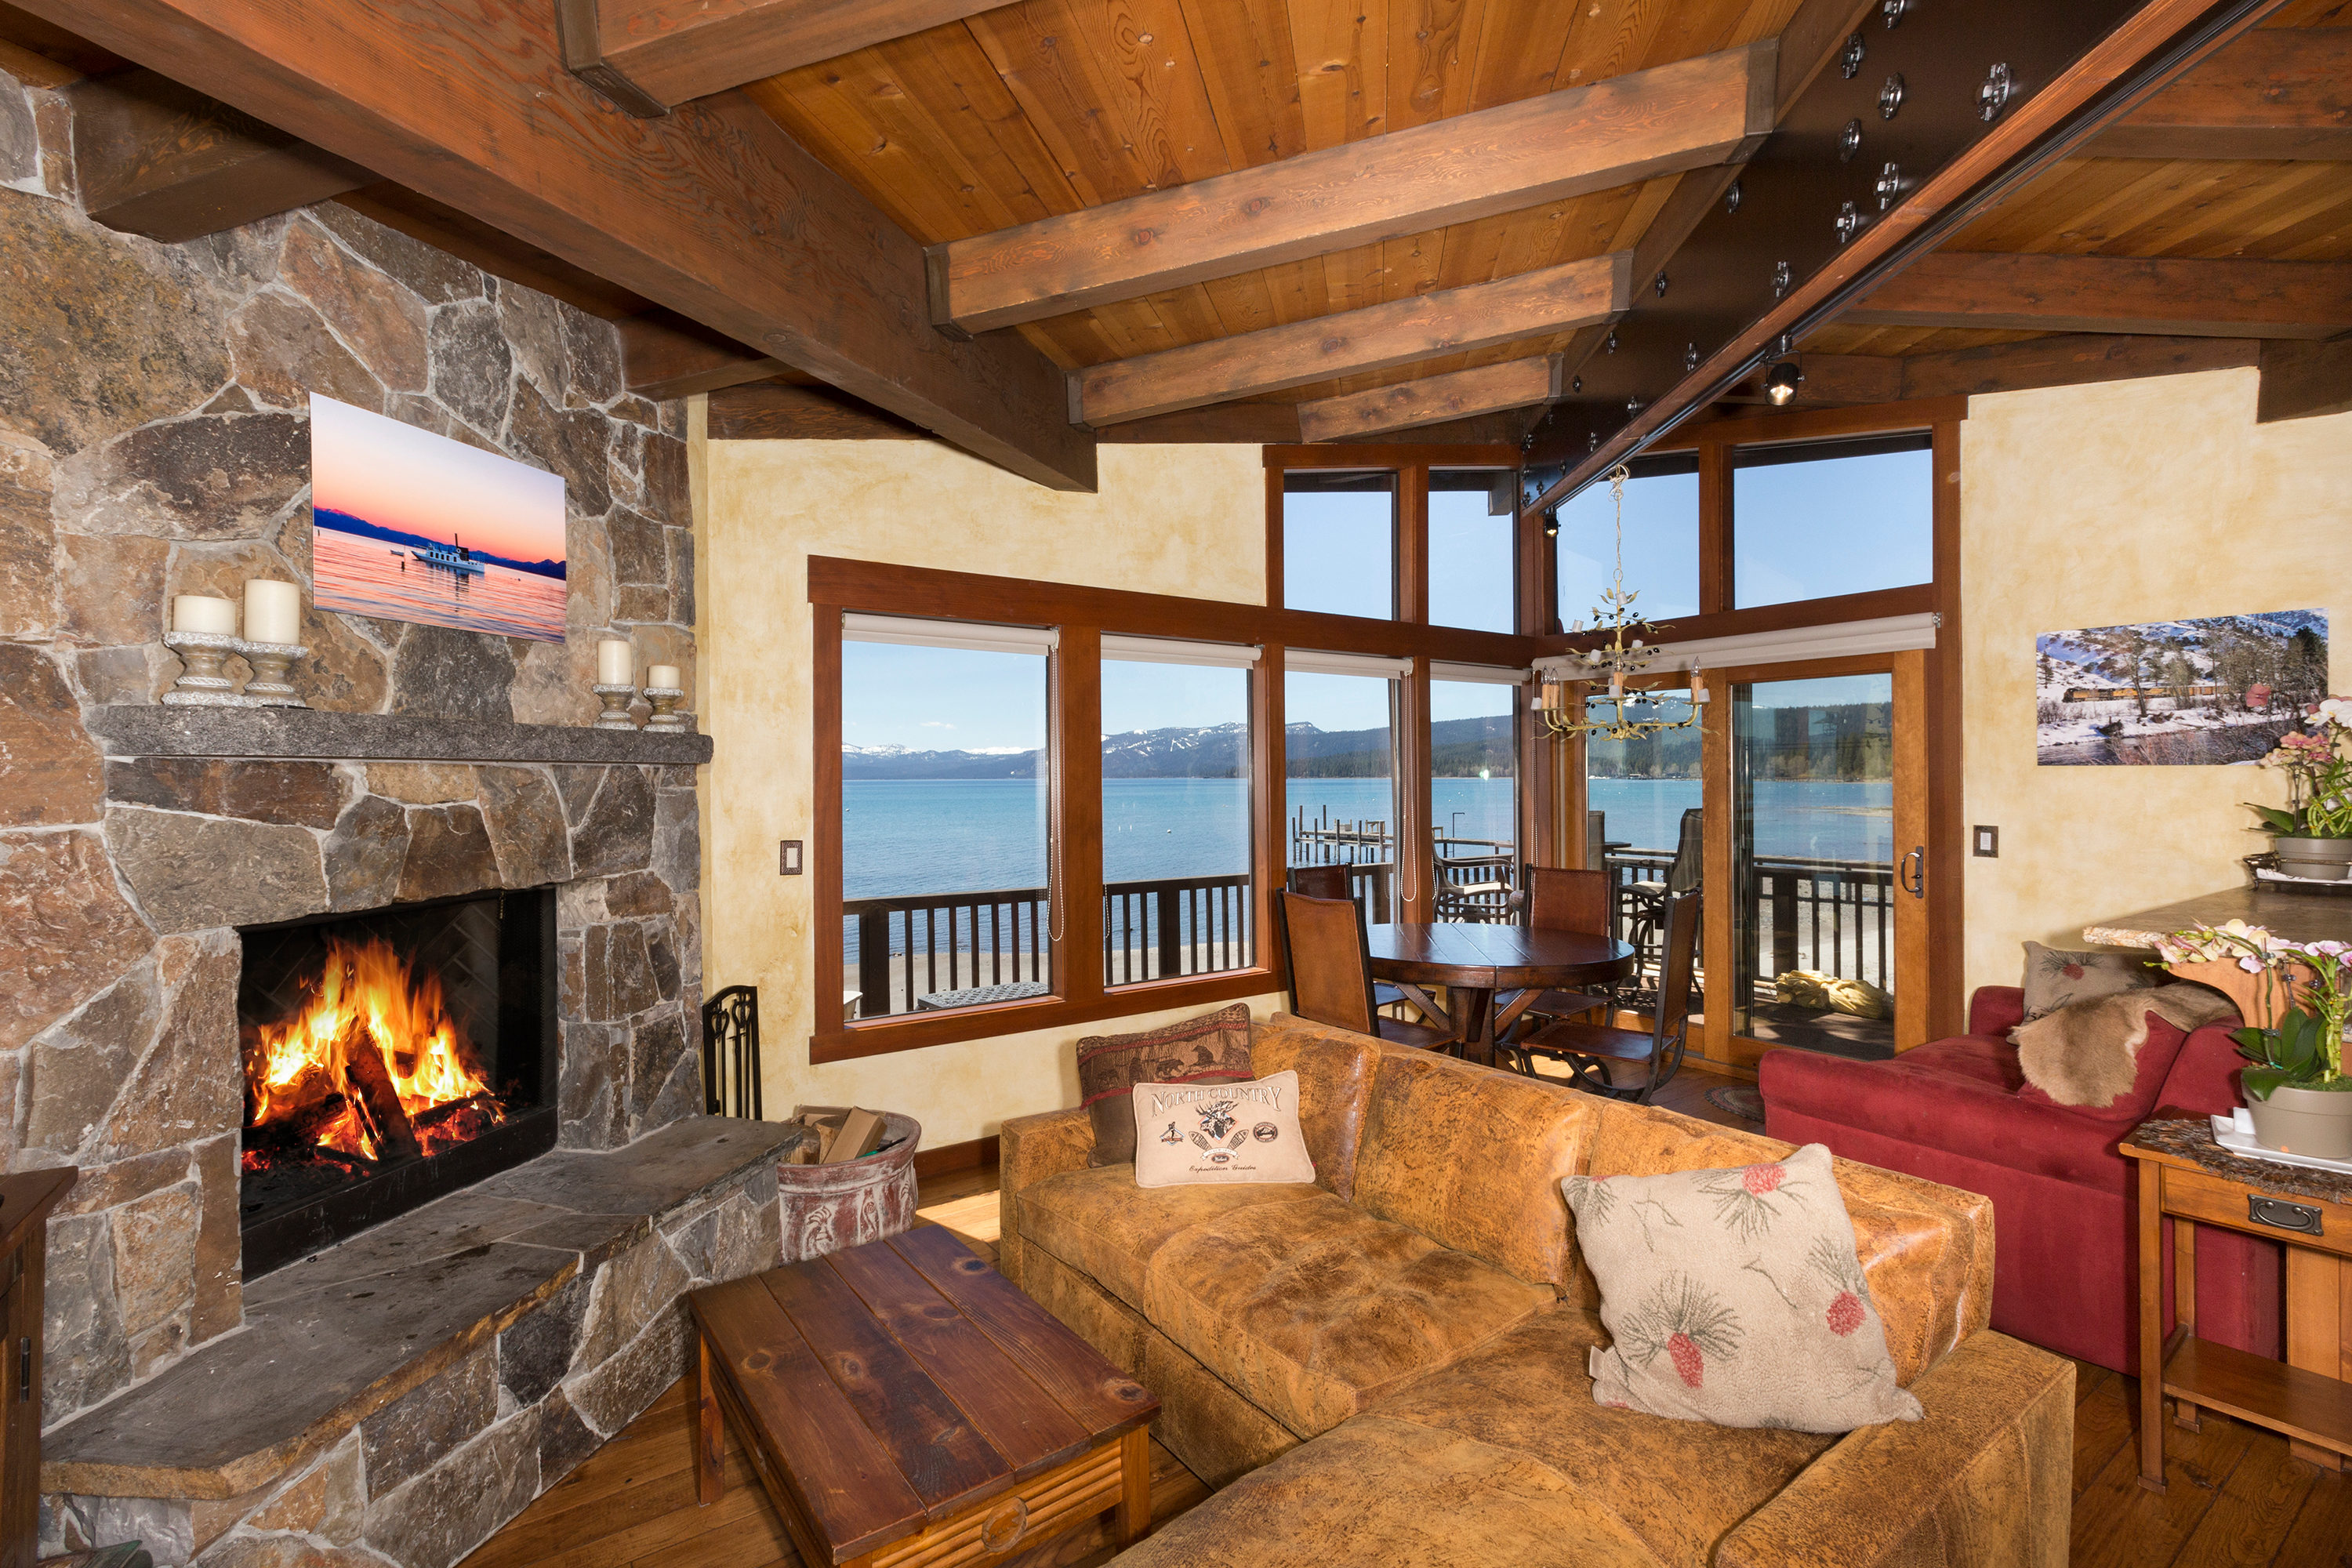 Lake tahoe rental star harbor lakefront 9 for Cabin rental tahoe